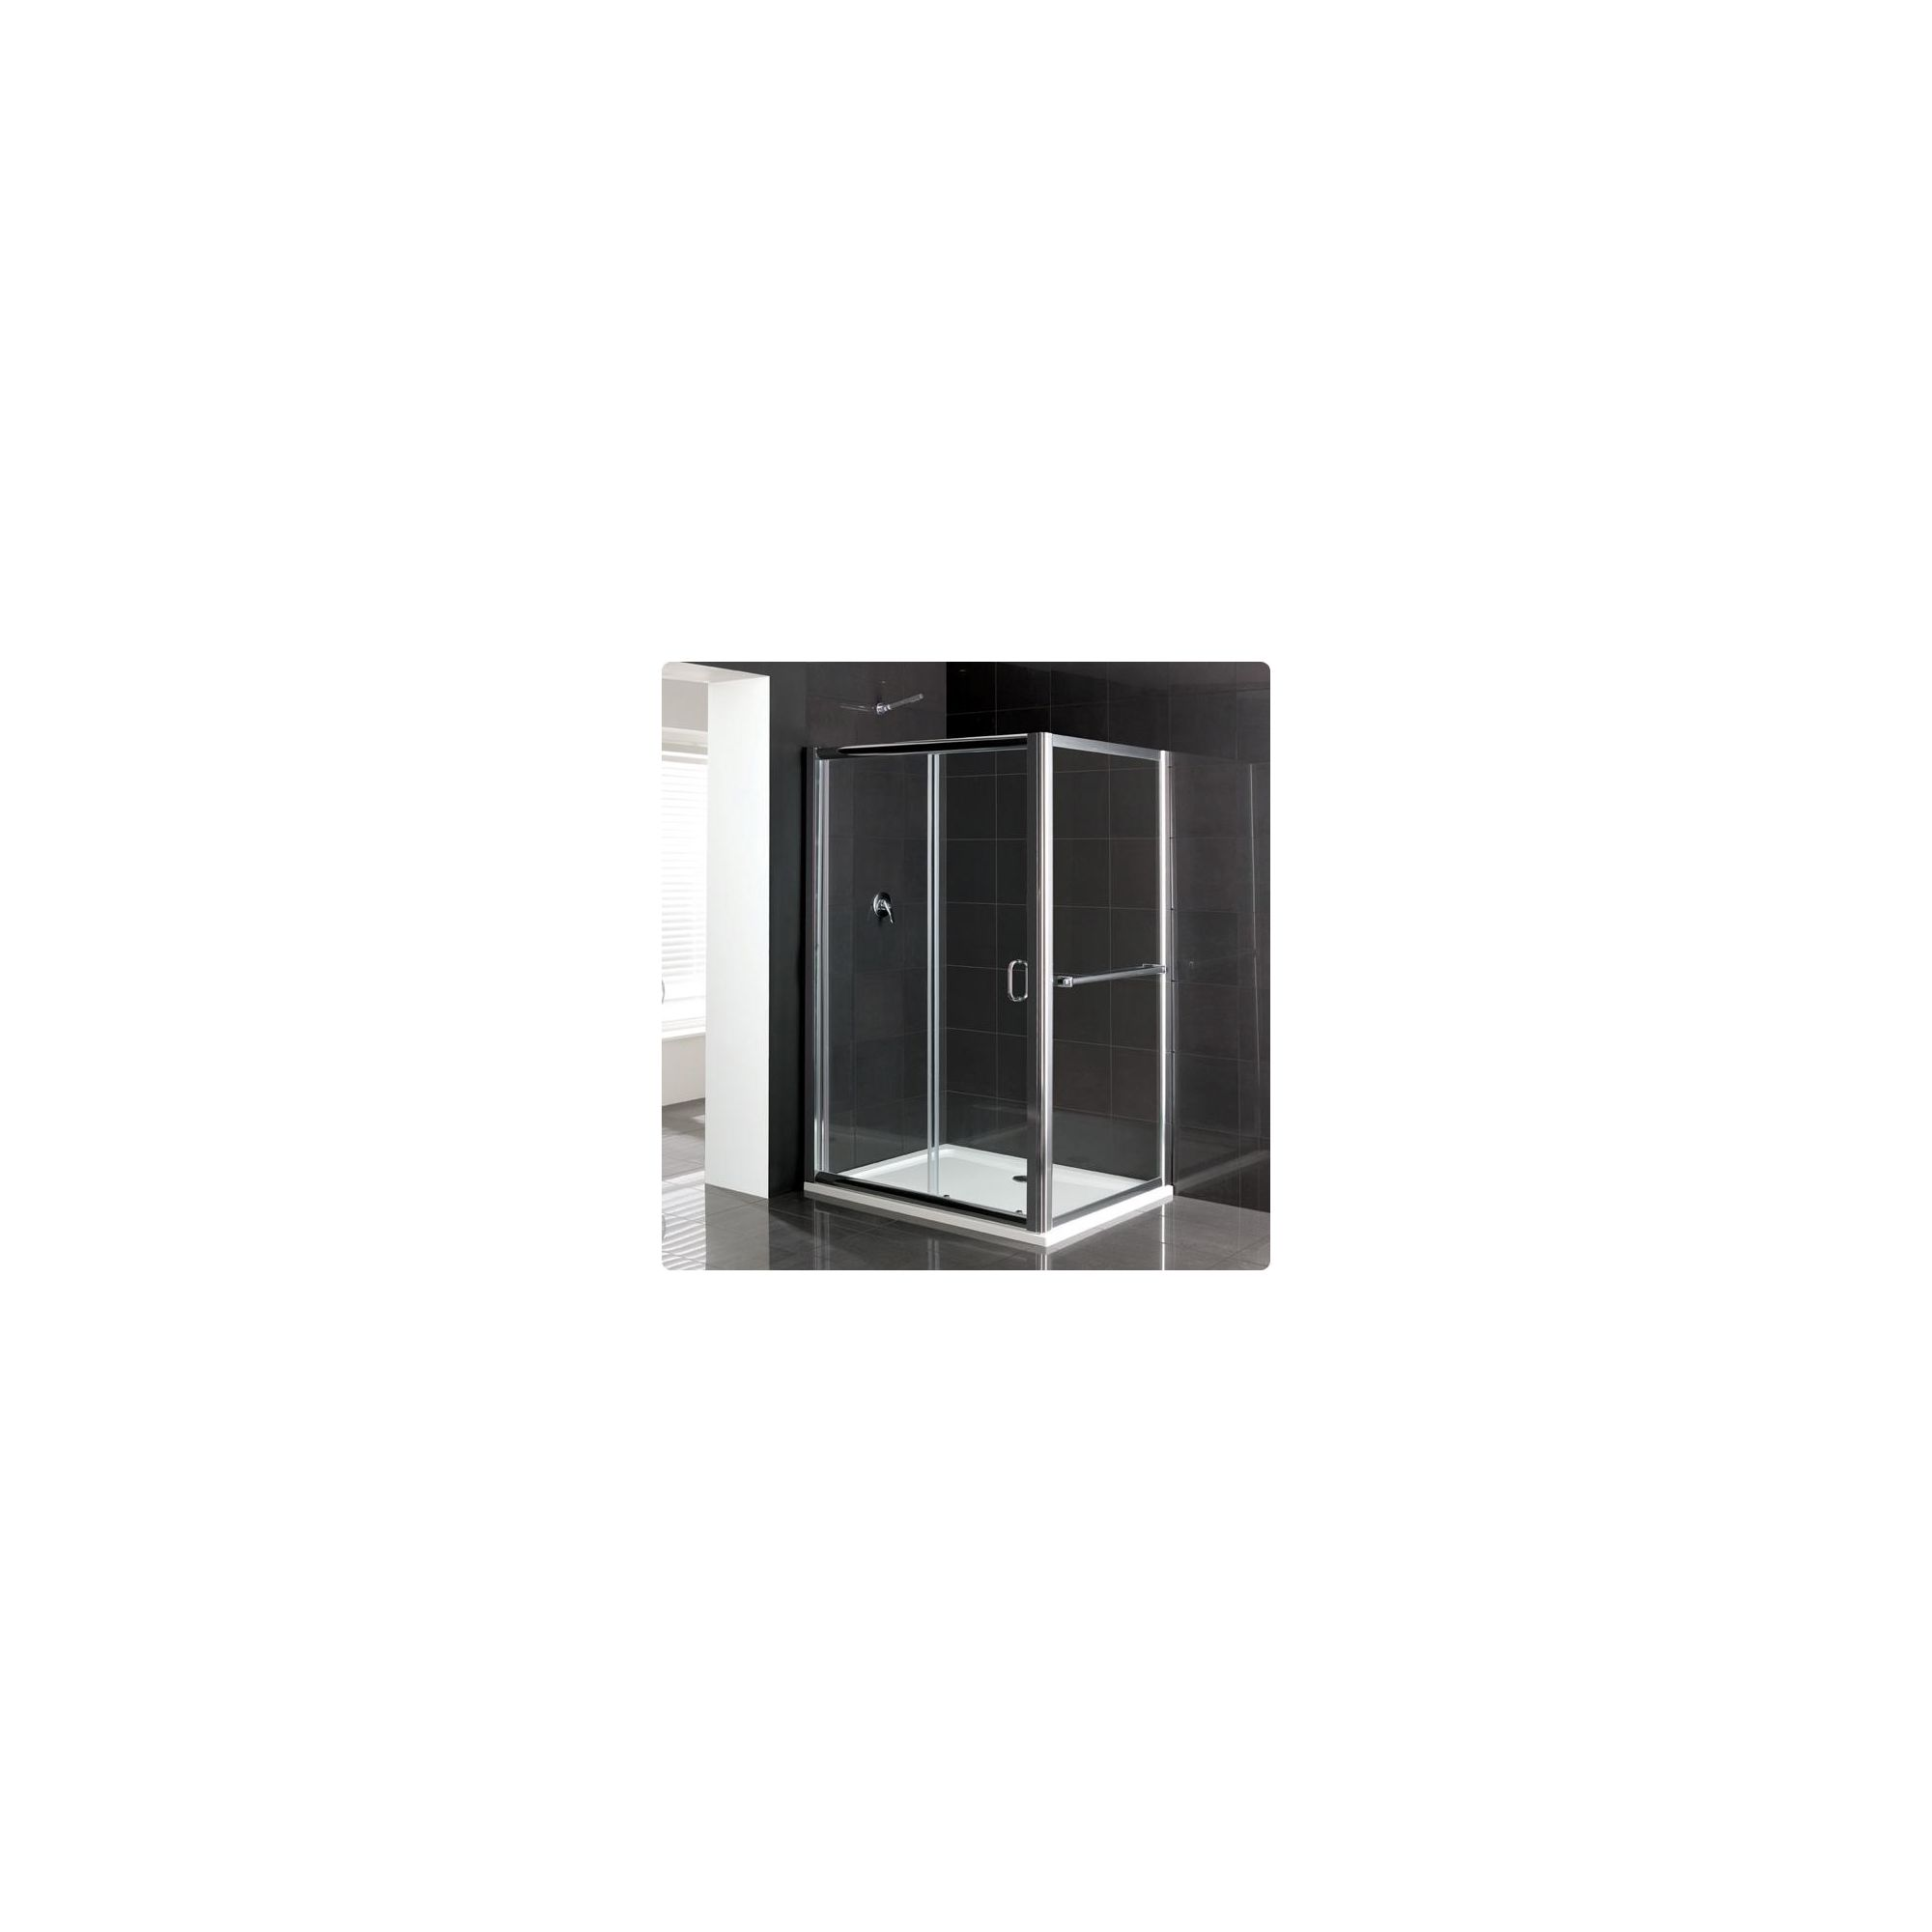 Duchy Elite Silver Sliding Door Shower Enclosure, 1100mm x 700mm, Standard Tray, 6mm Glass at Tesco Direct